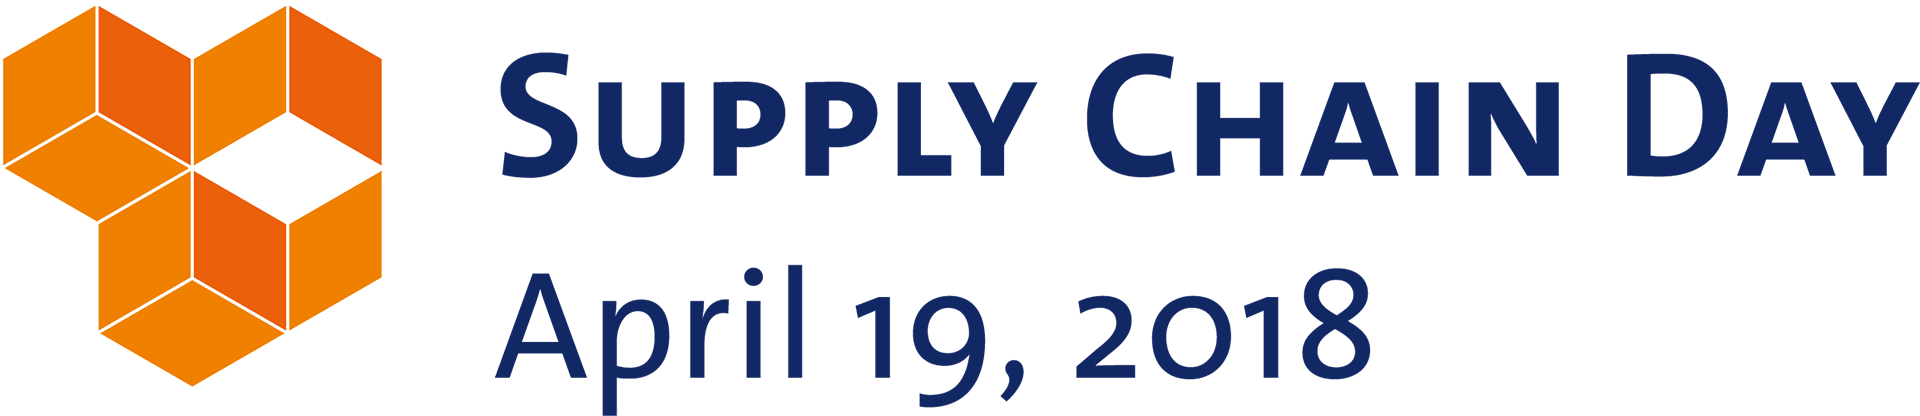 Supply Chain Day 2018